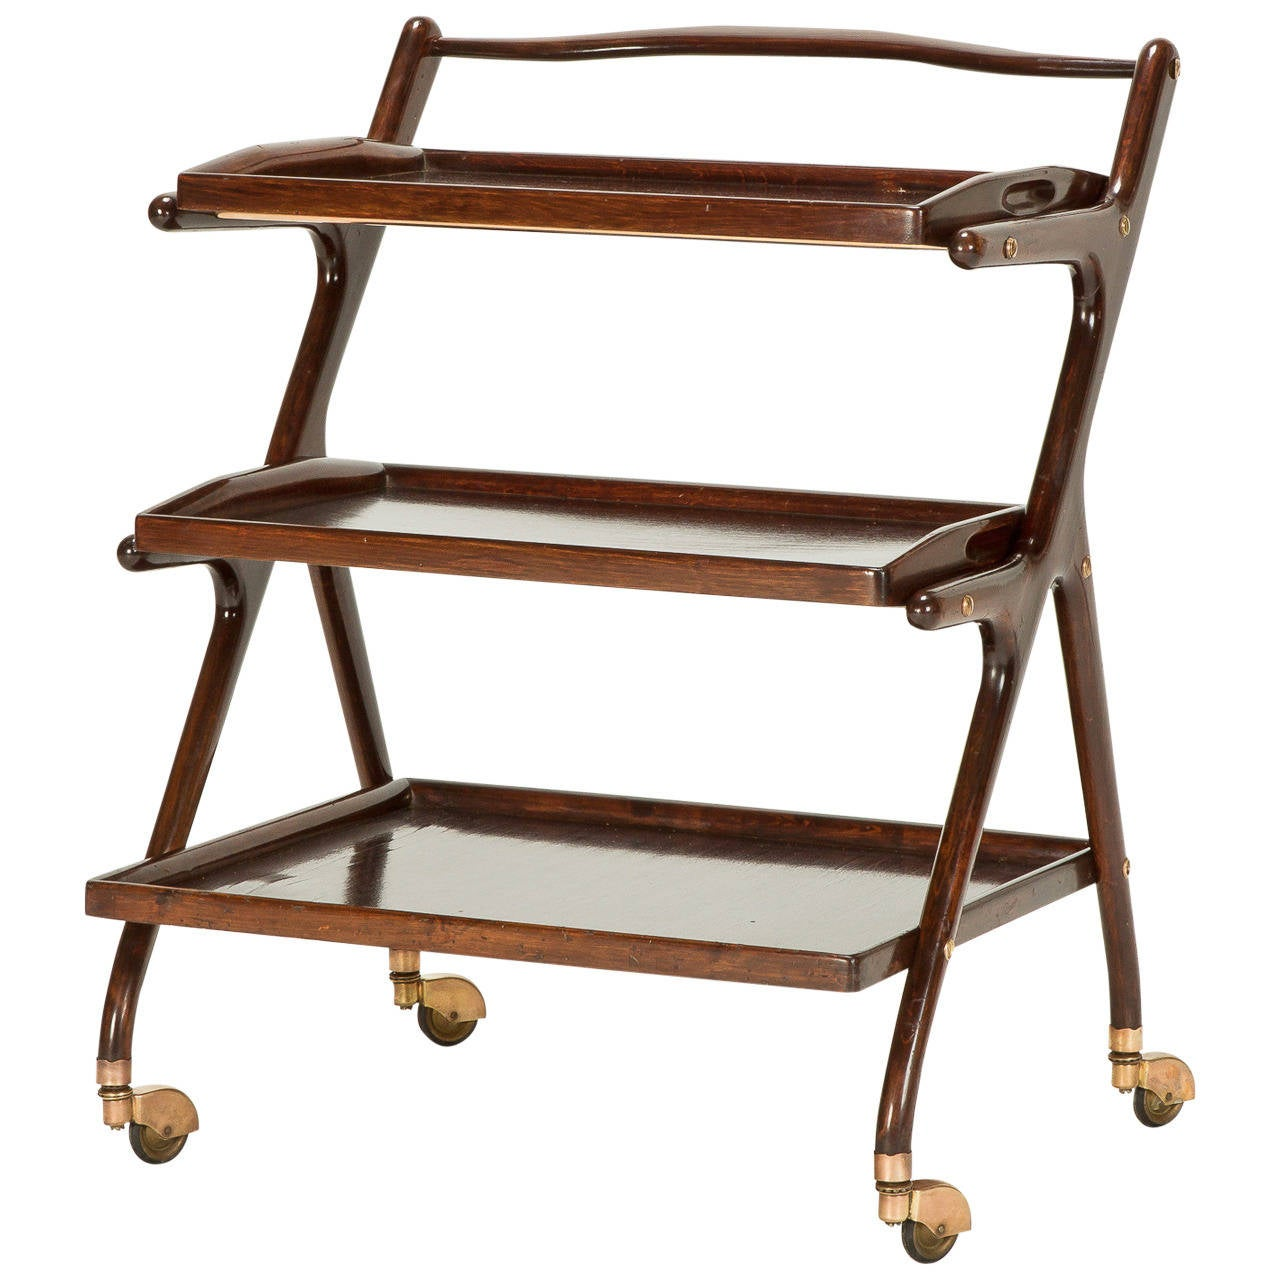 Italian Mahogany Serving Trolley by Cesare Lacca, 1950s